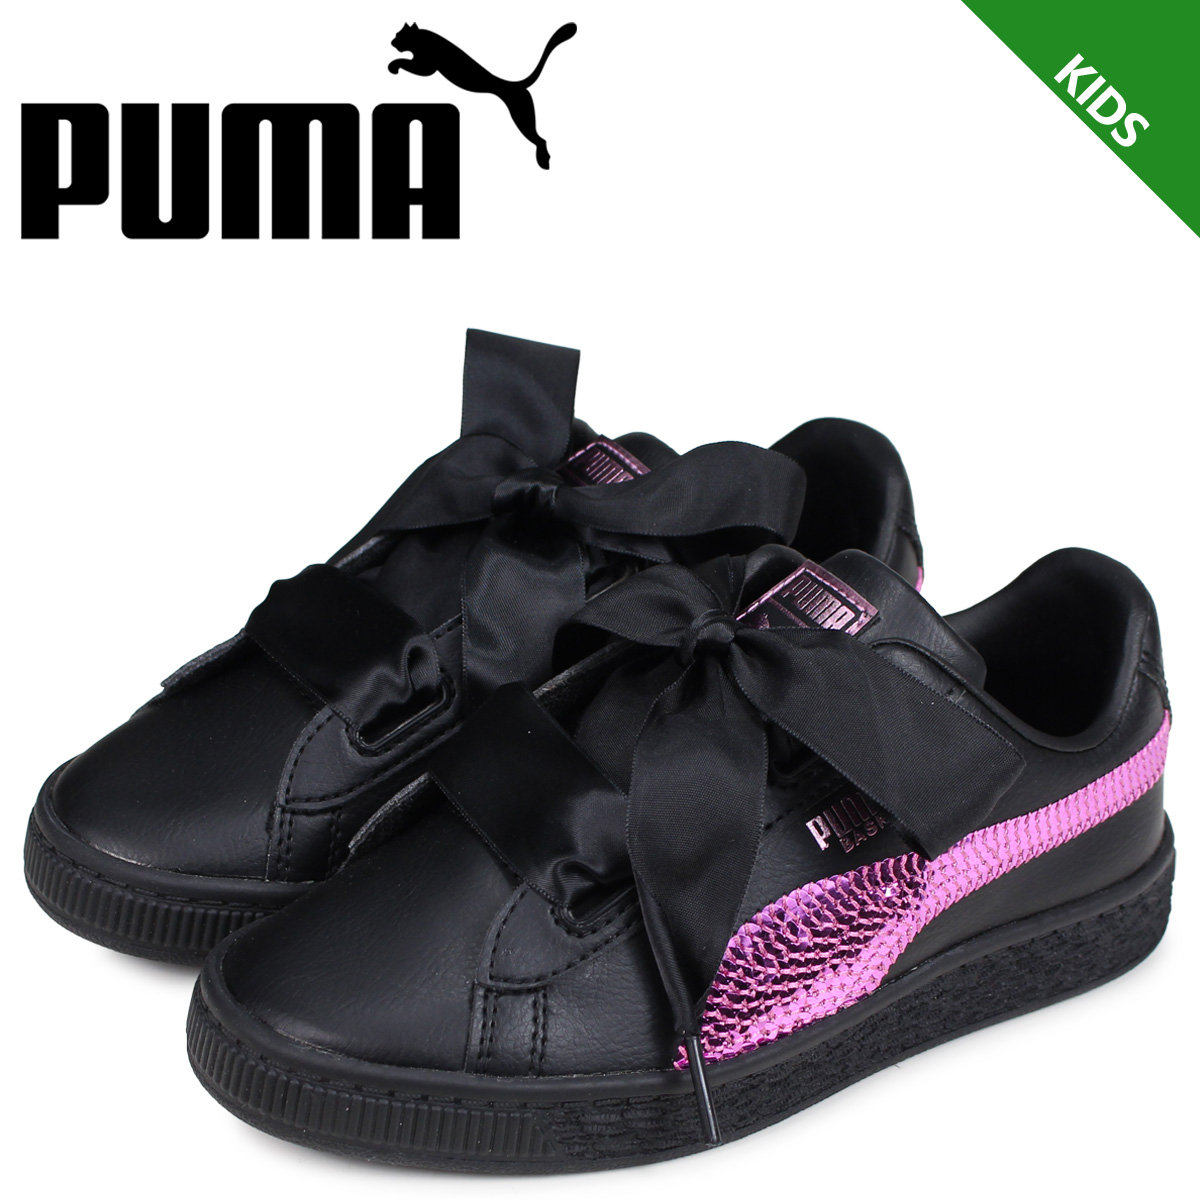 Kids Black Basket Ps 36684801 Puma Heart Sneakers Bling dQCWrxBoe